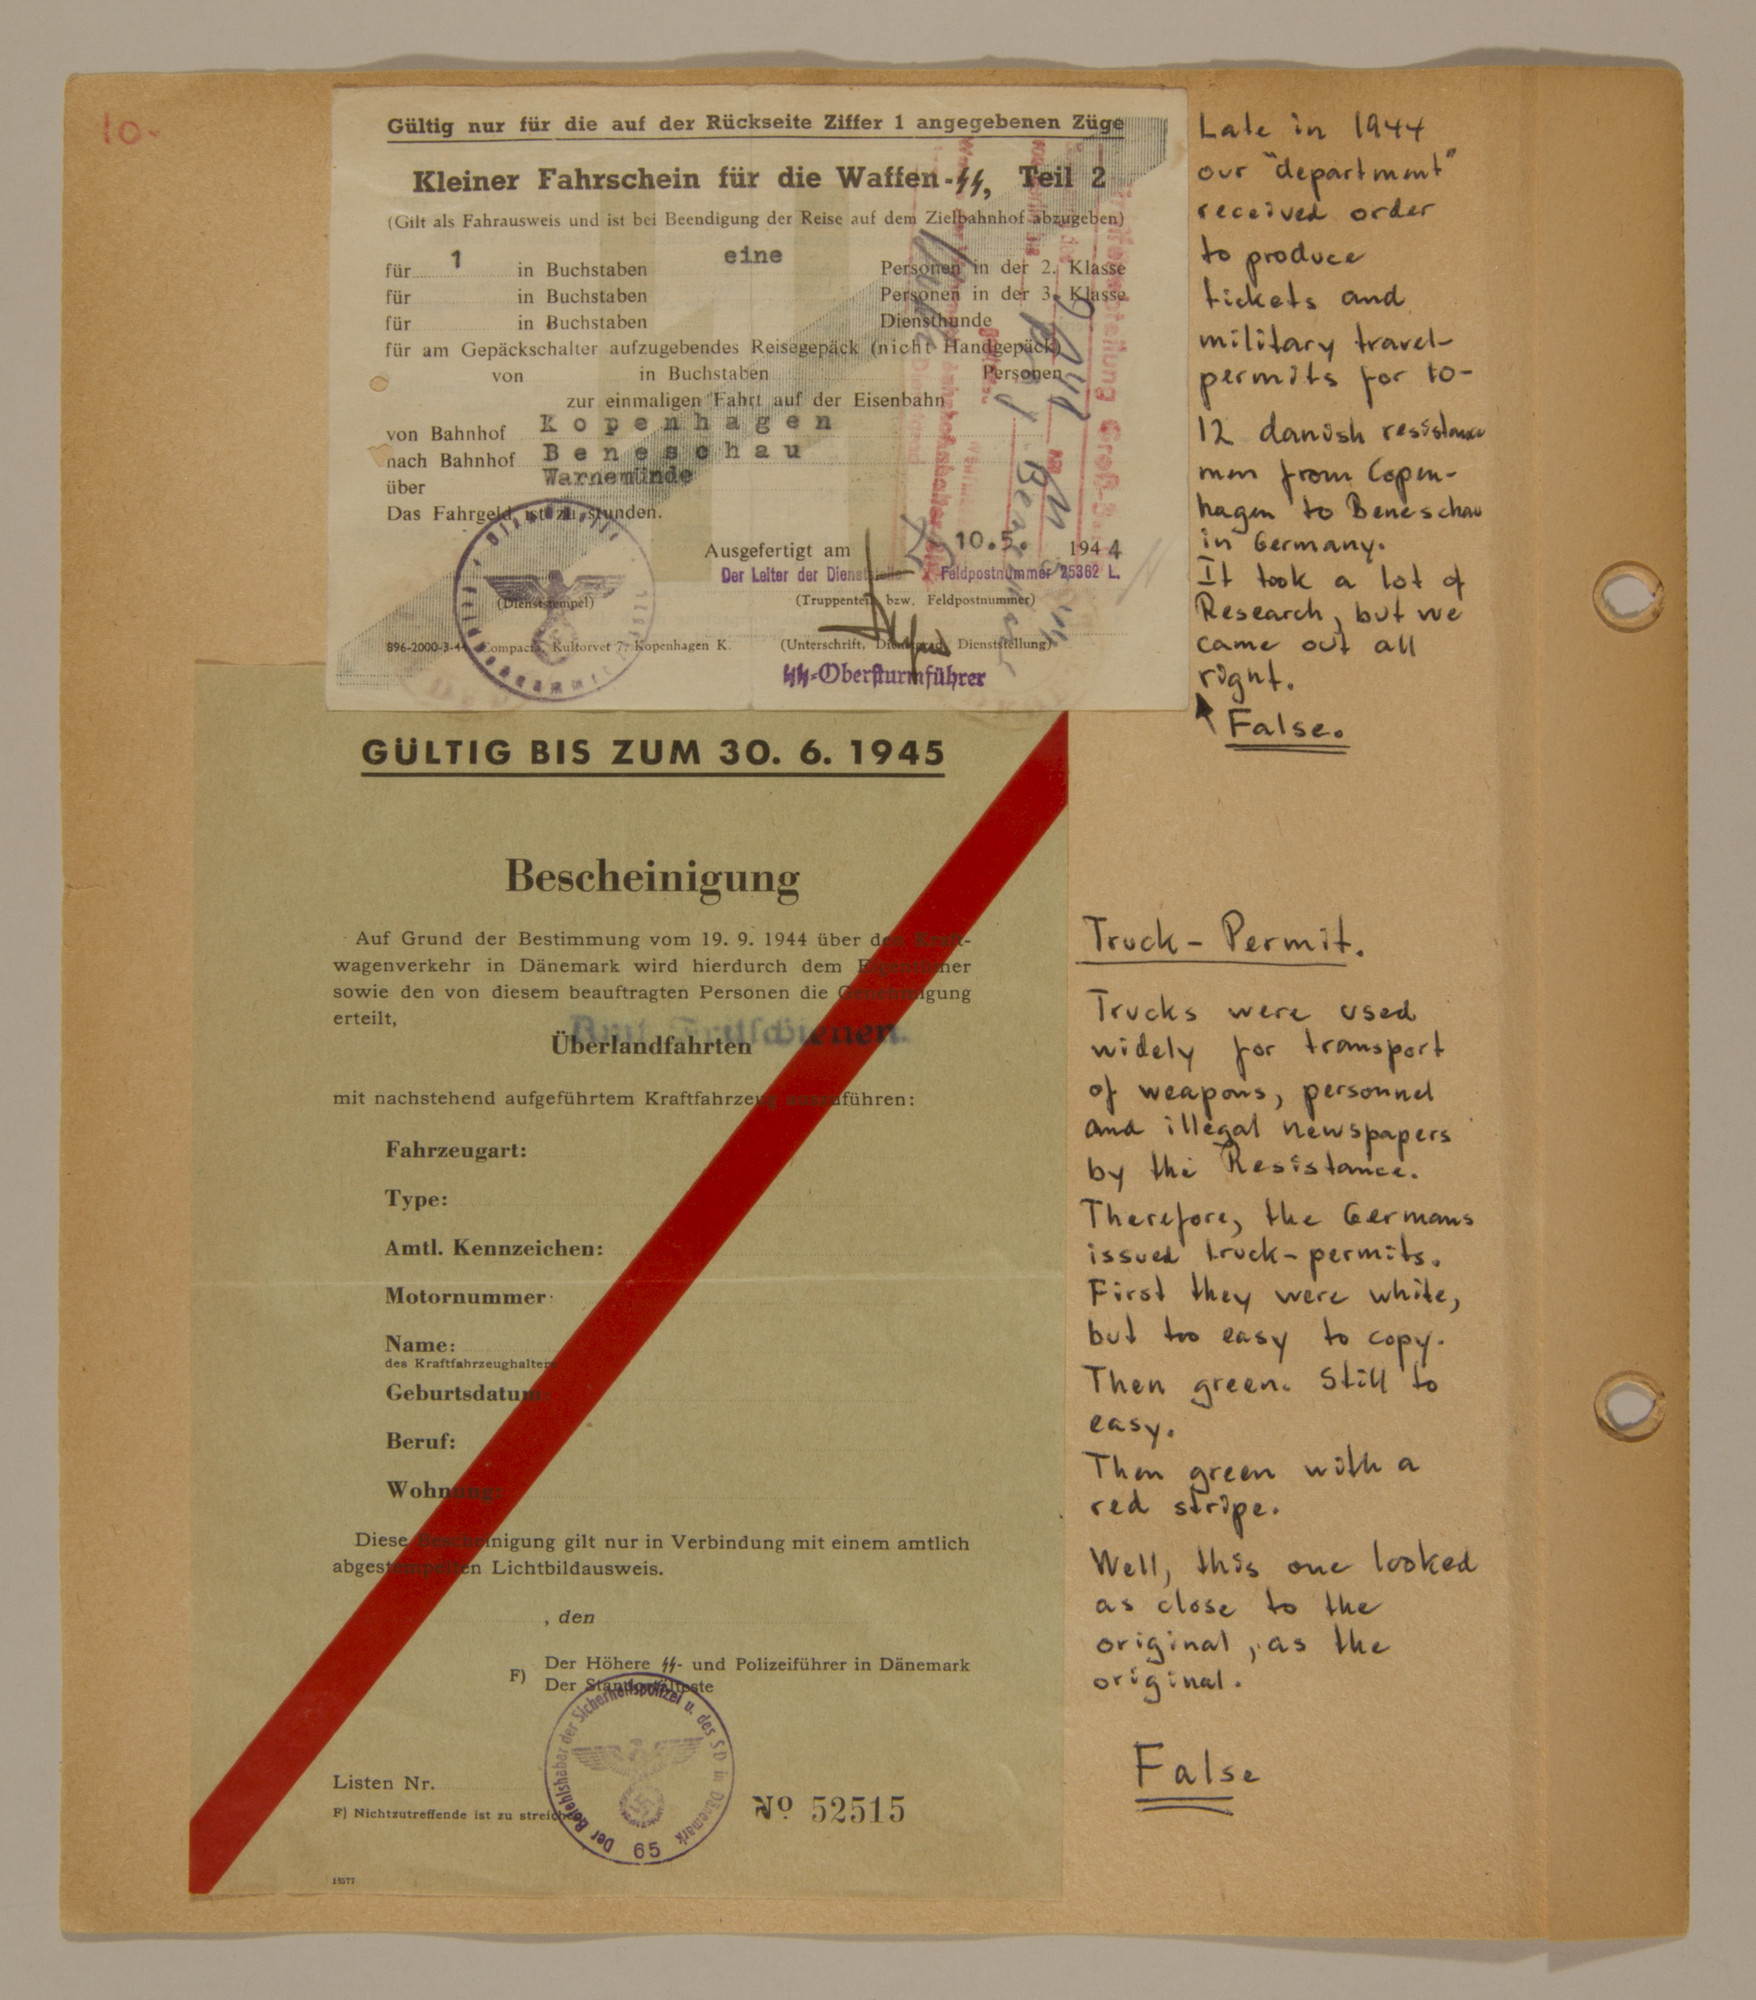 Page from volume three of a set of scrapbooks compiled by Bjorn Sibbern, a Danish policeman and resistance member, documenting the German occupation of Denmark.  This page contains Bjorn Sibbern's (aka Svend Nieslsen's) false permits for using a truck and traveling for military purposes.